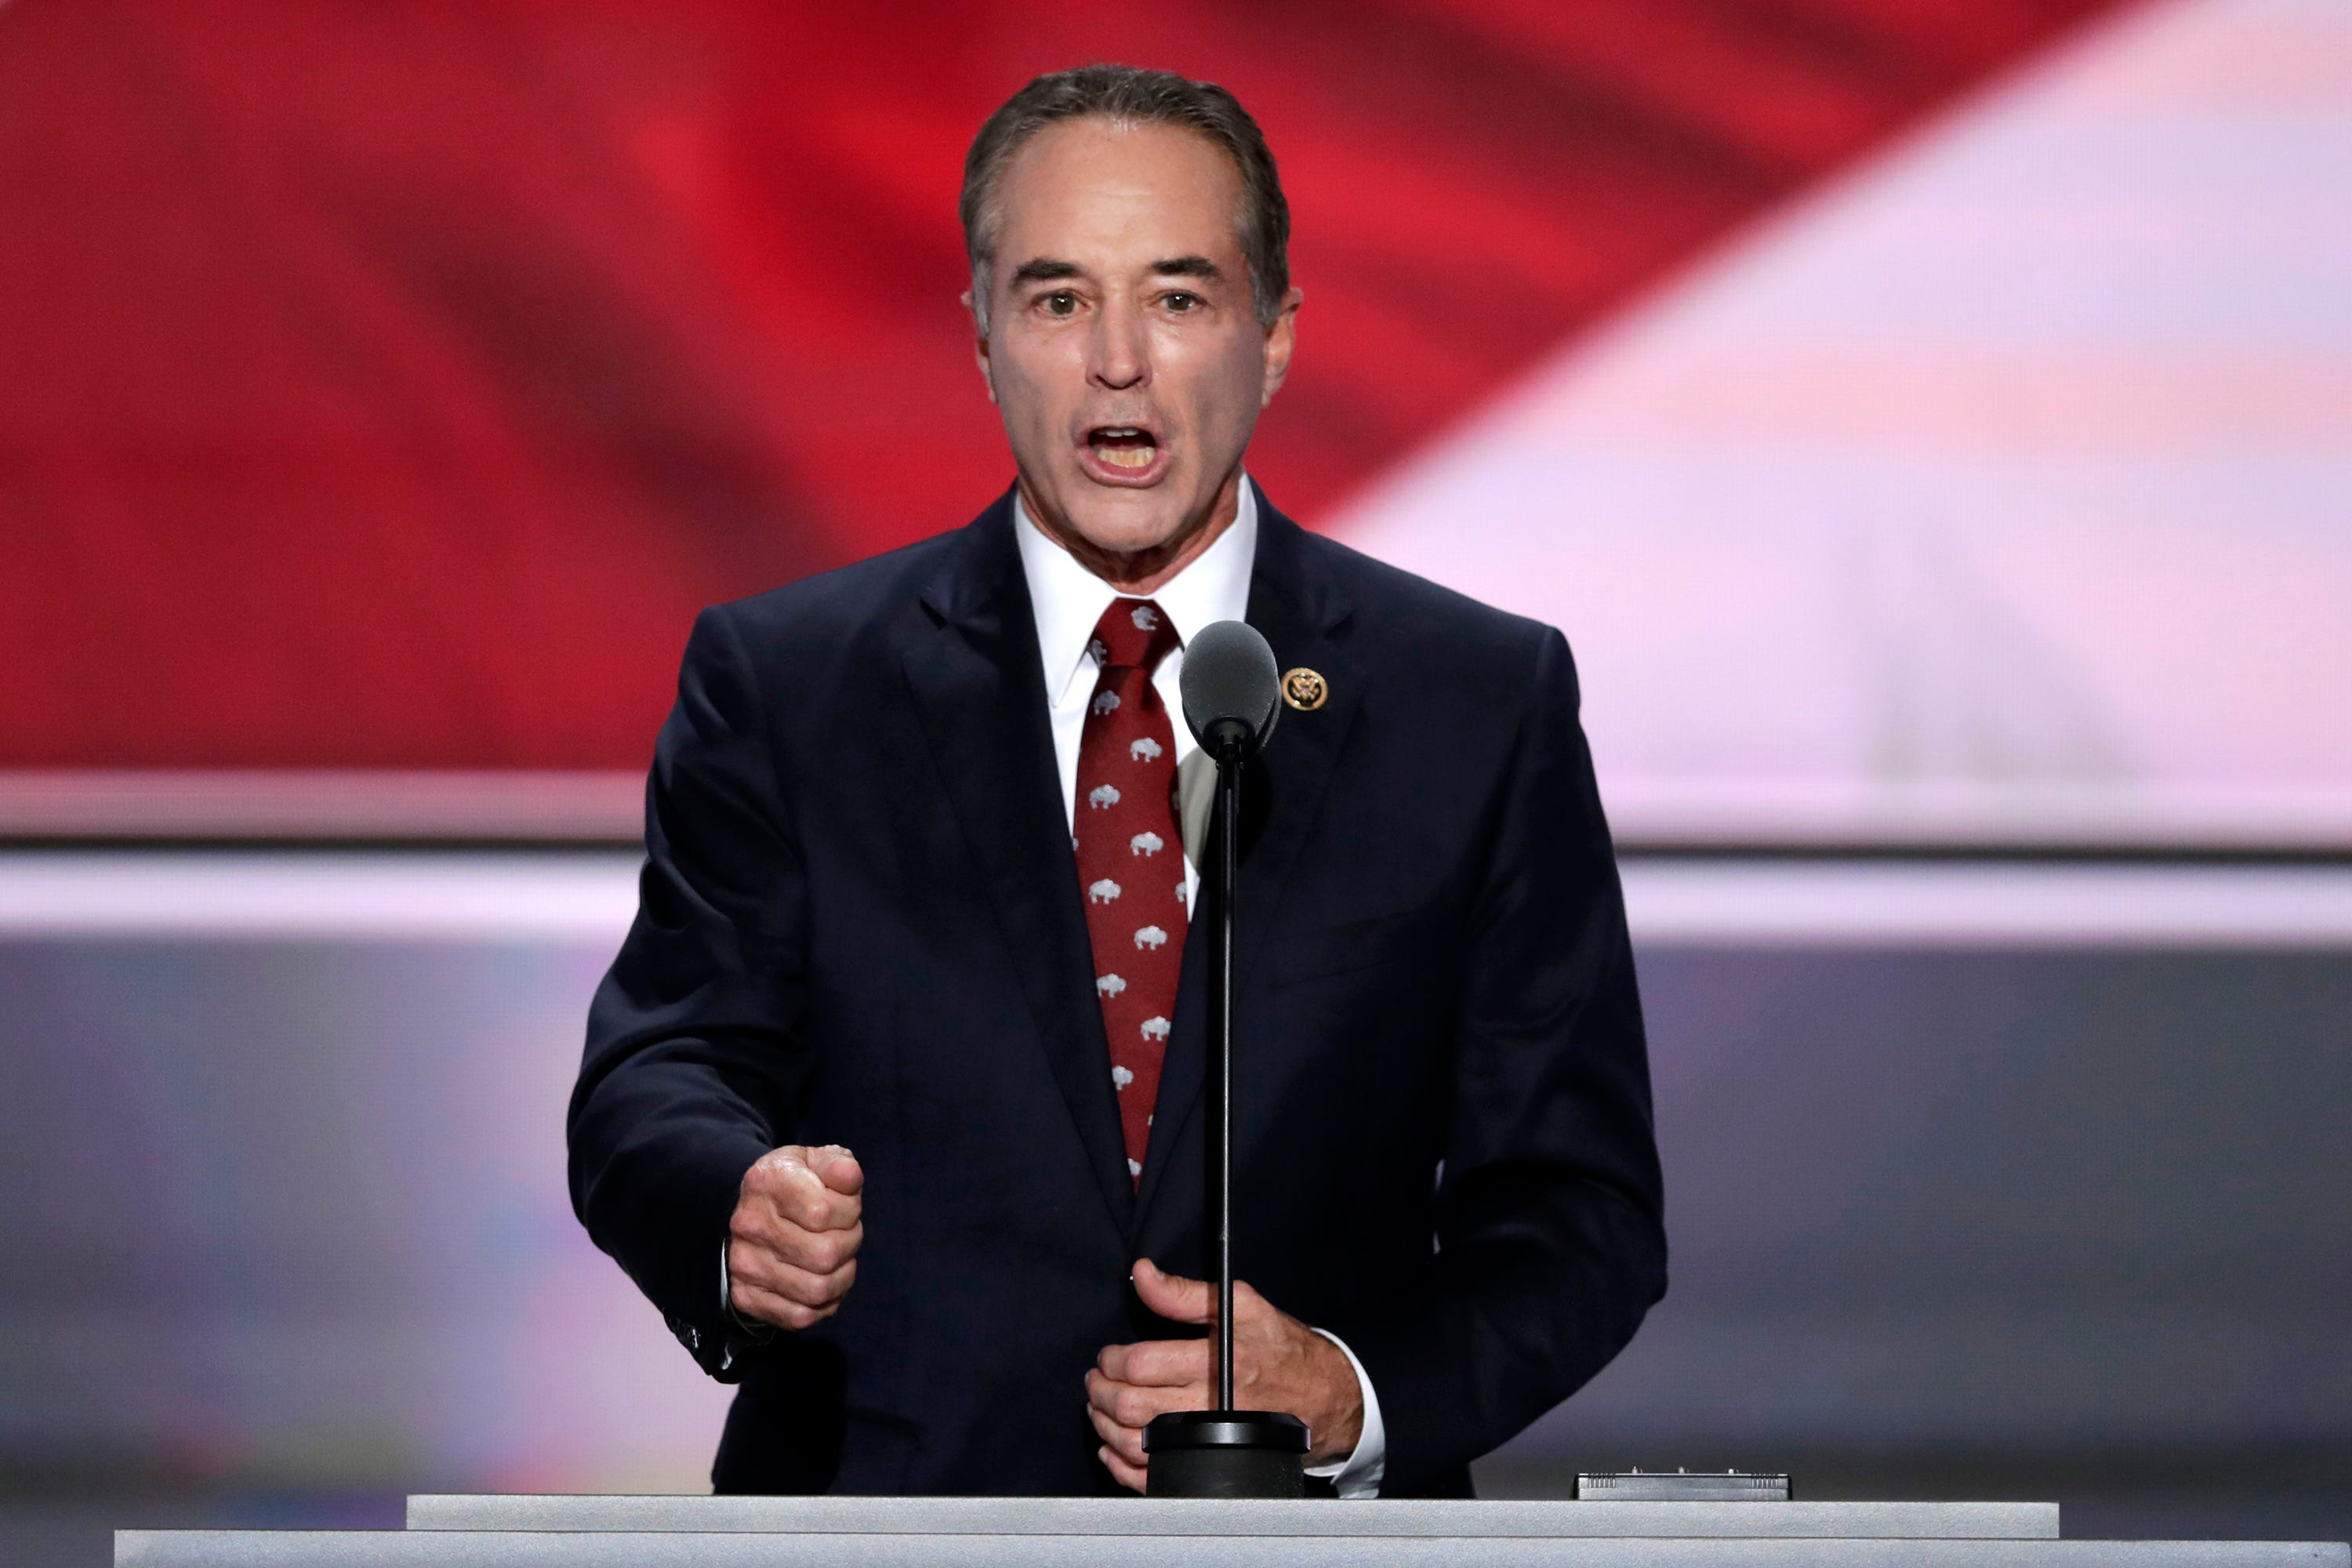 Rep. Chris Collins suspends re-election campaign days after arrest on insider trading charges